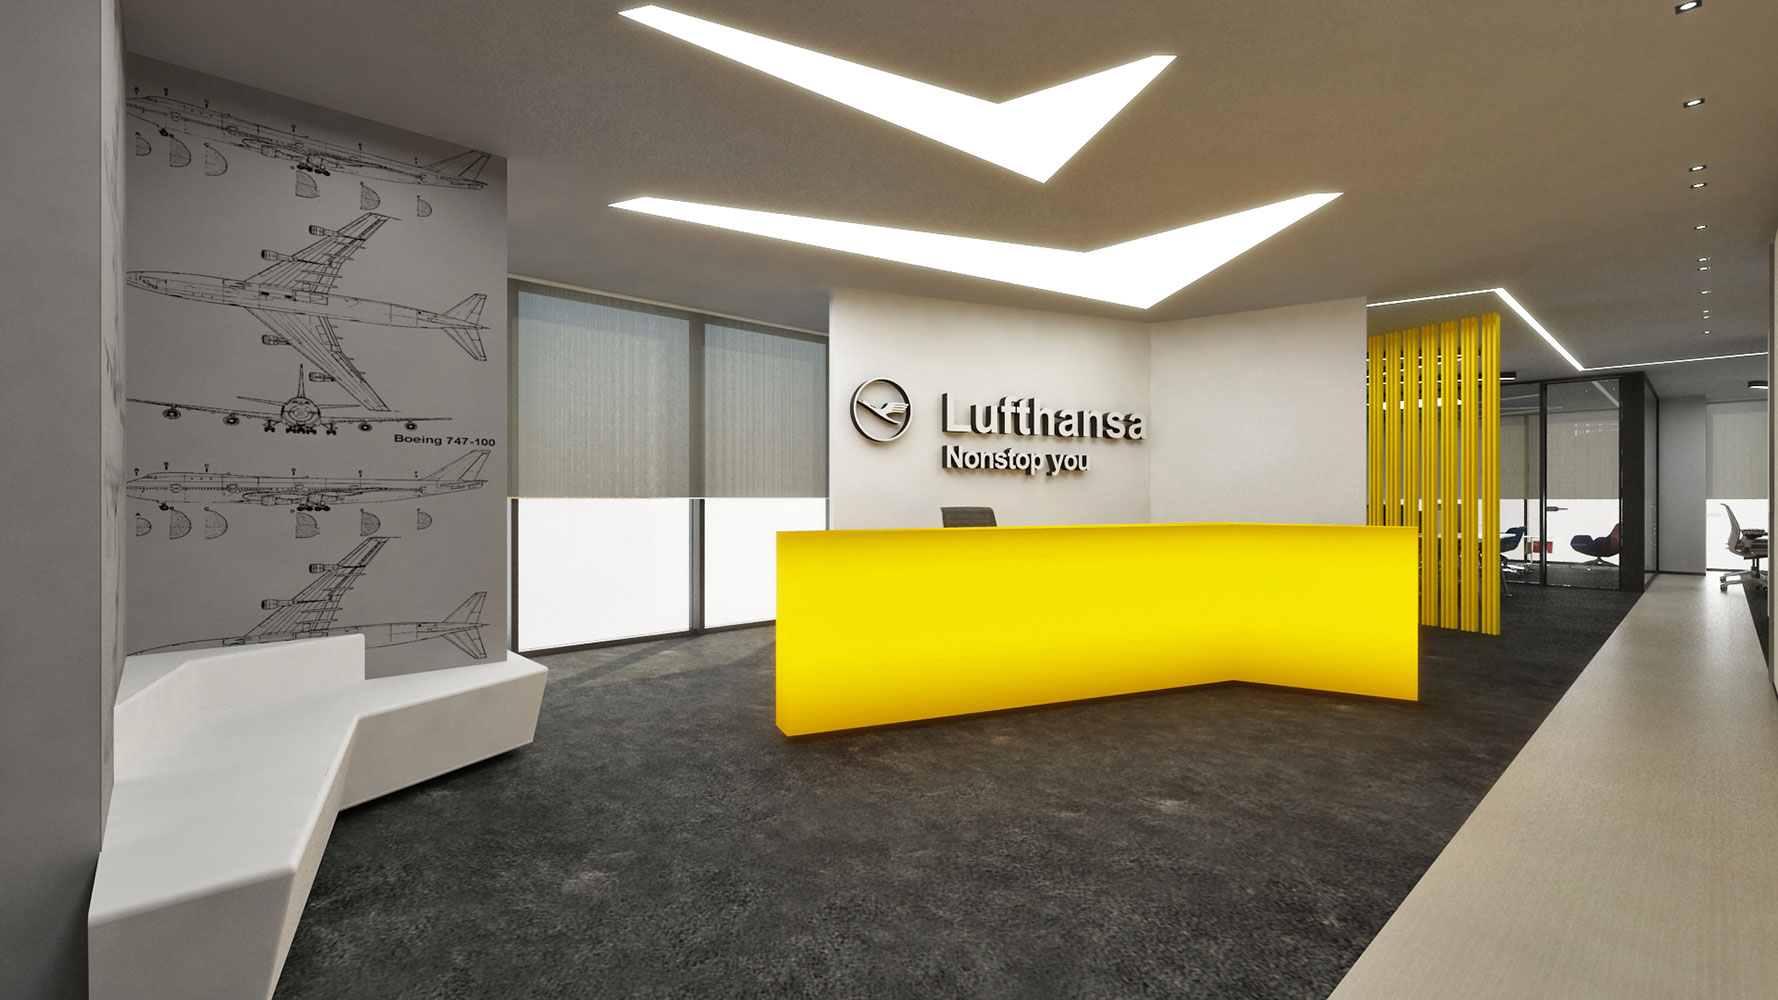 Lufthansa net loss in the 2nd quarter reduced twice